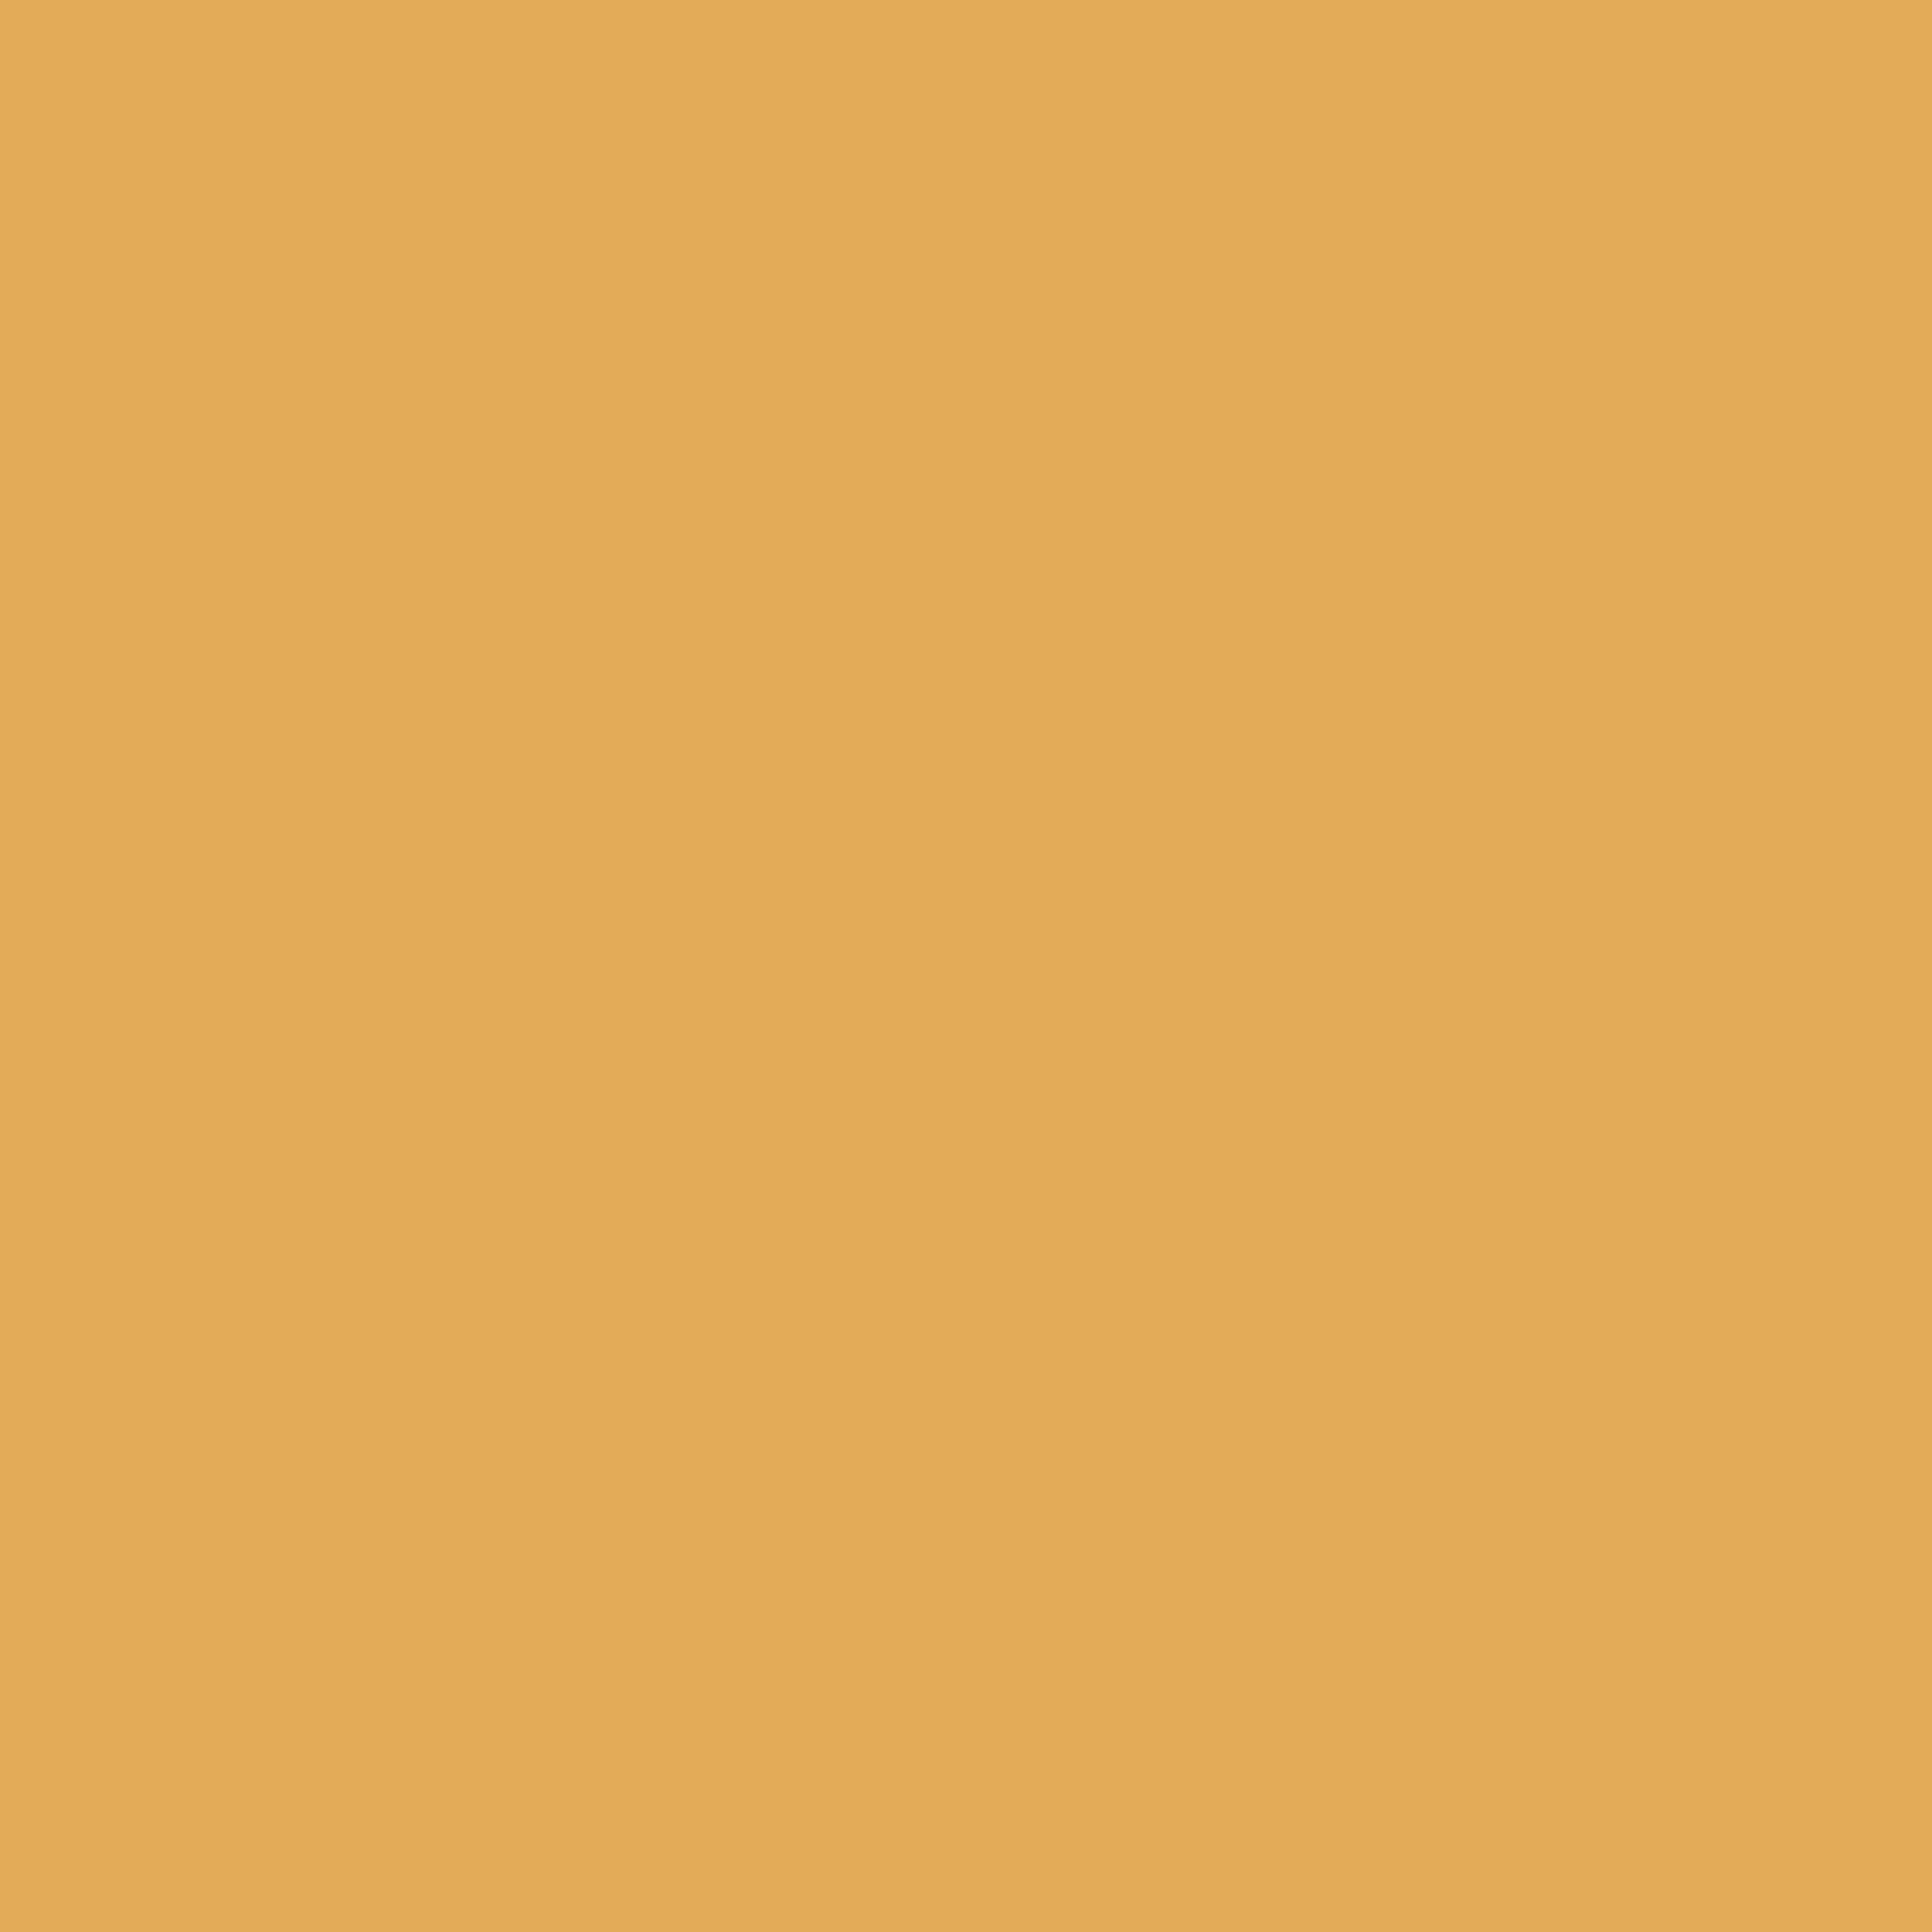 2732x2732 Sunray Solid Color Background